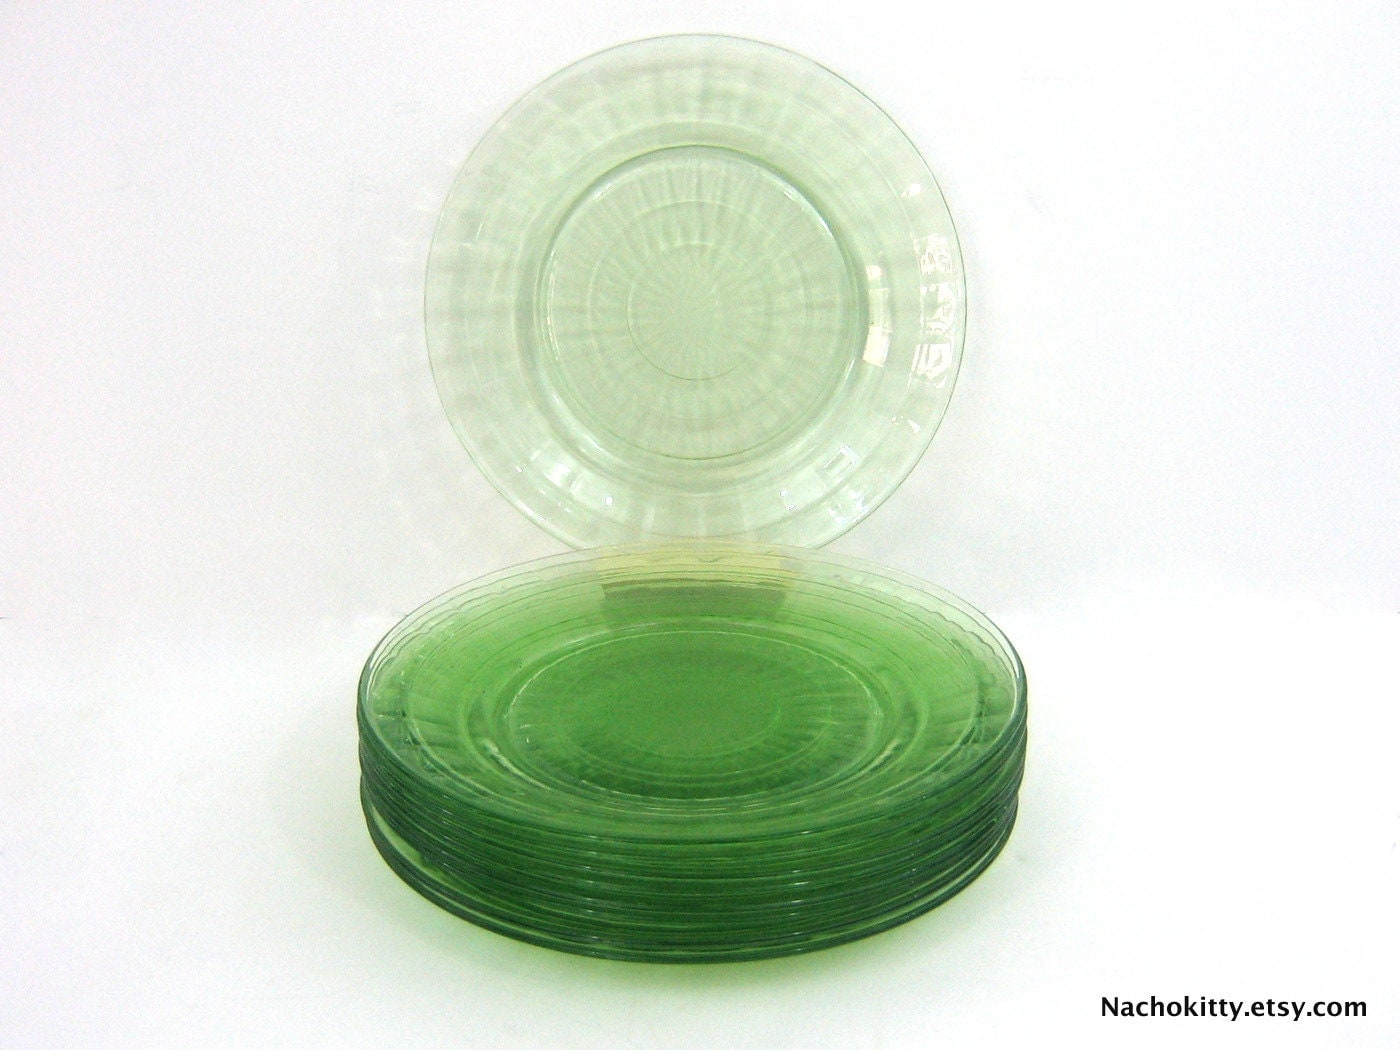 Plate Set Green Depression Glass Optic 1930s - Nachokitty